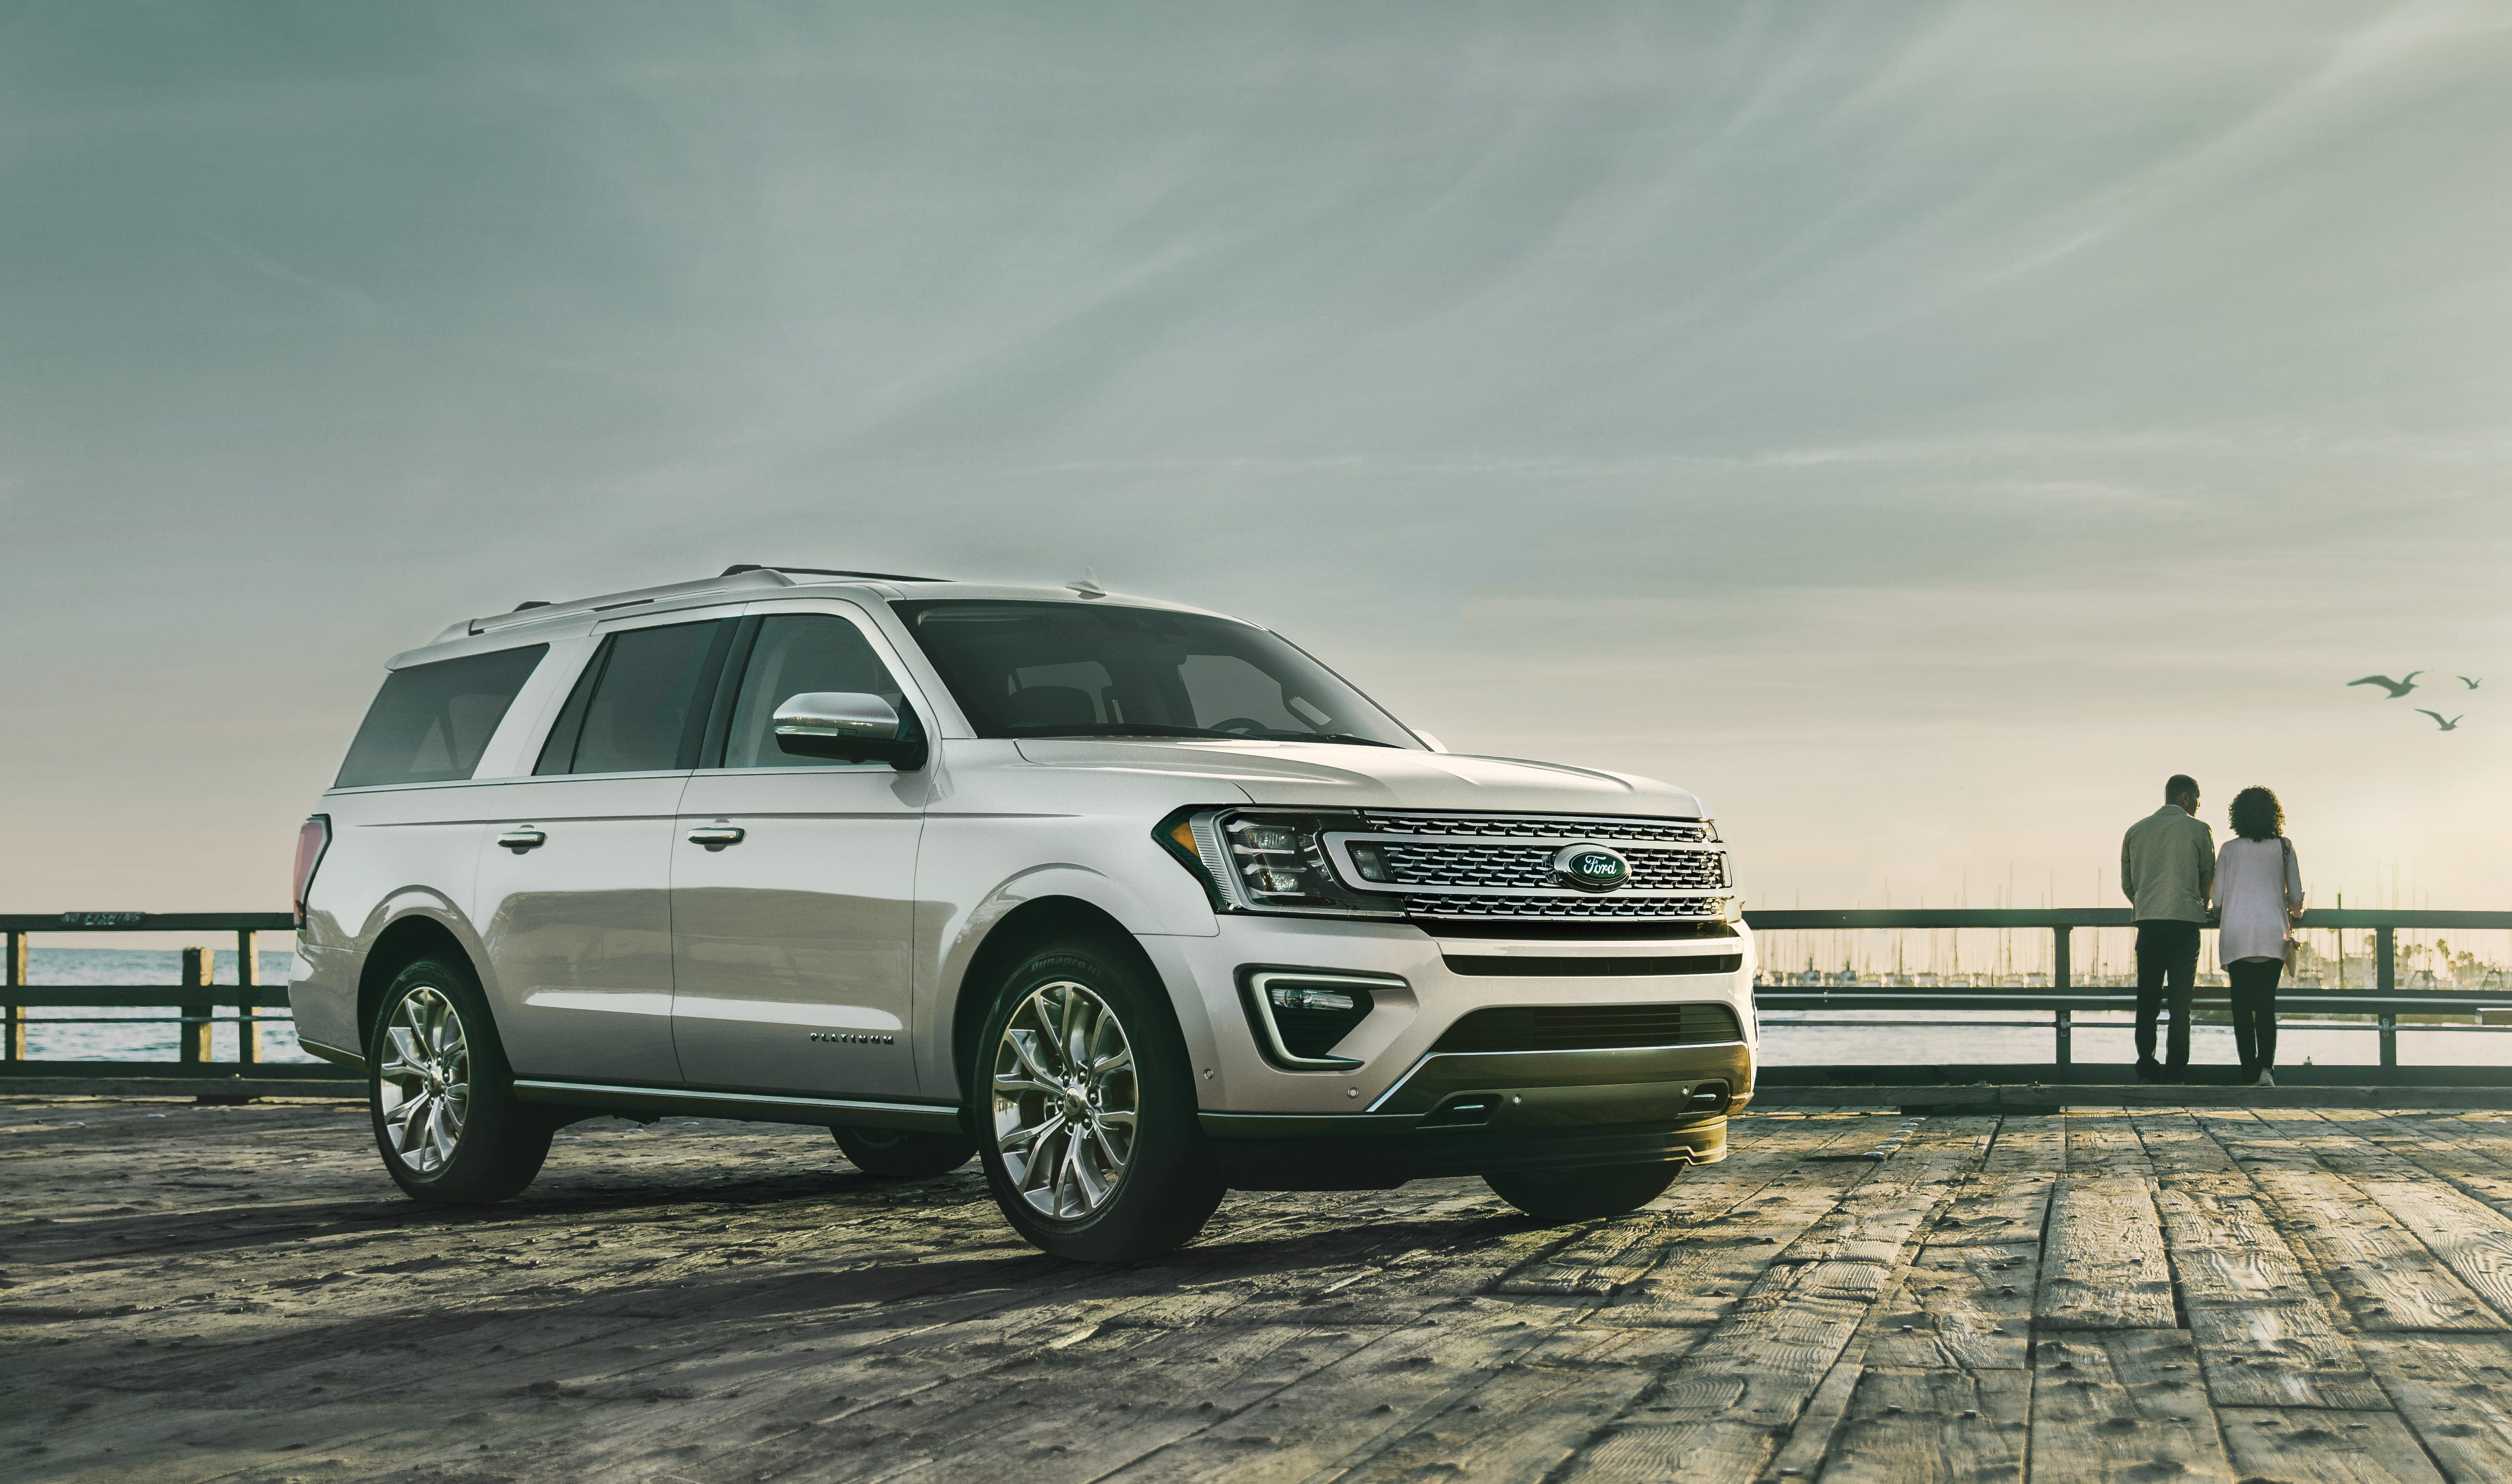 Ford Expedition ranks no. 1